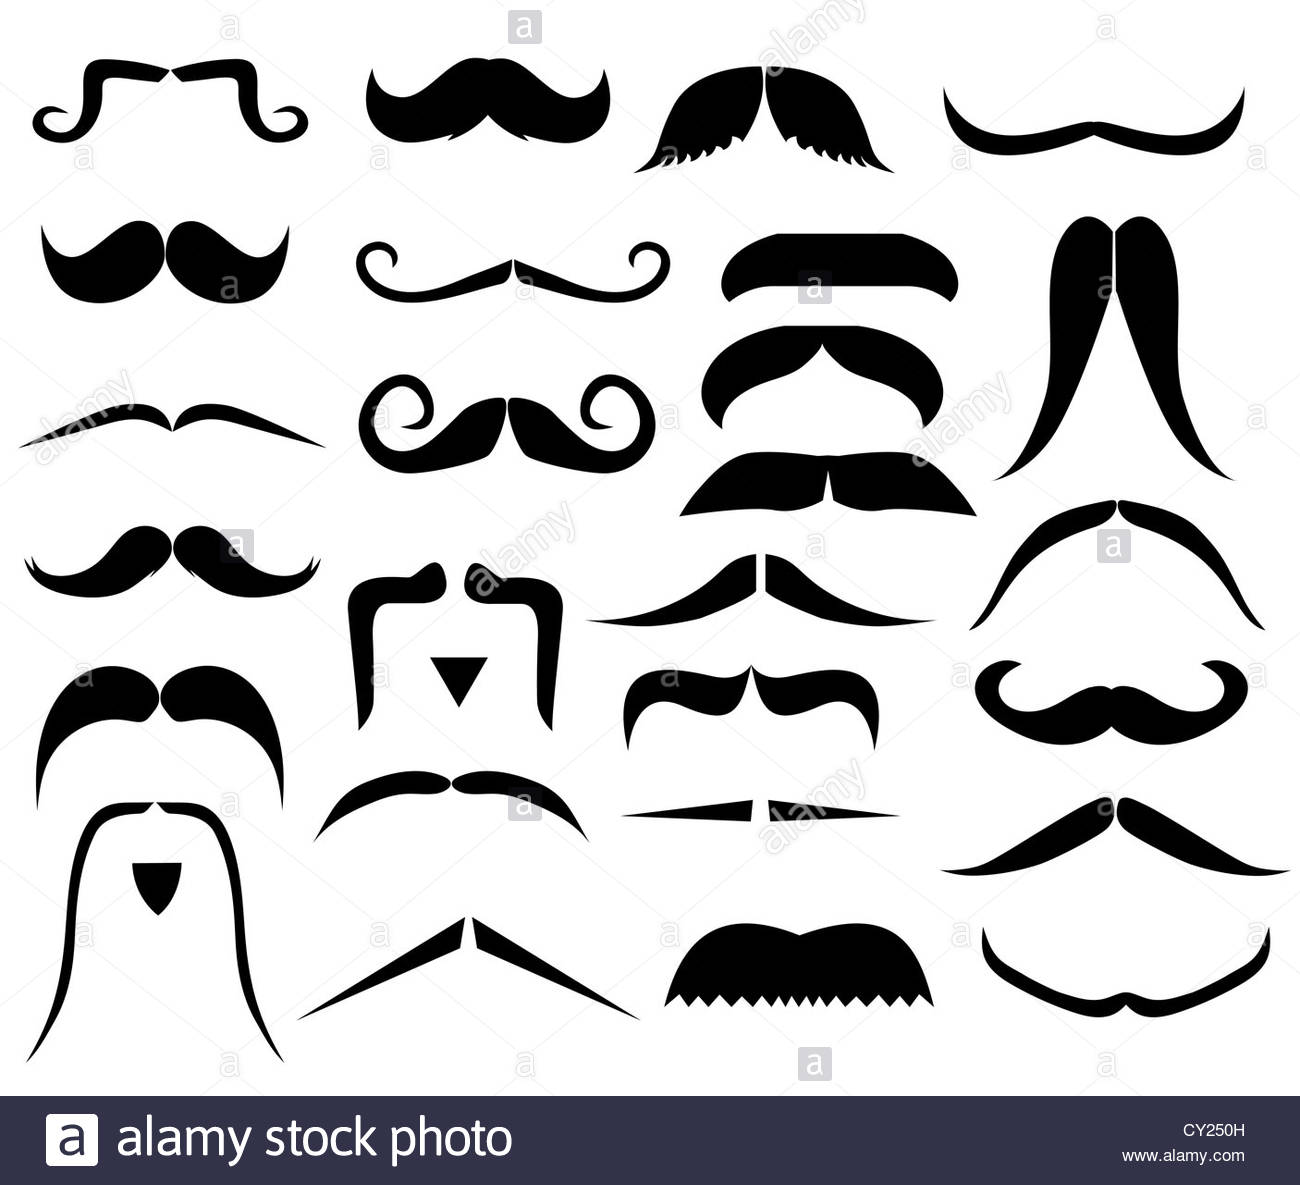 Handlebar Mustache Black and White Stock Photos & Images.